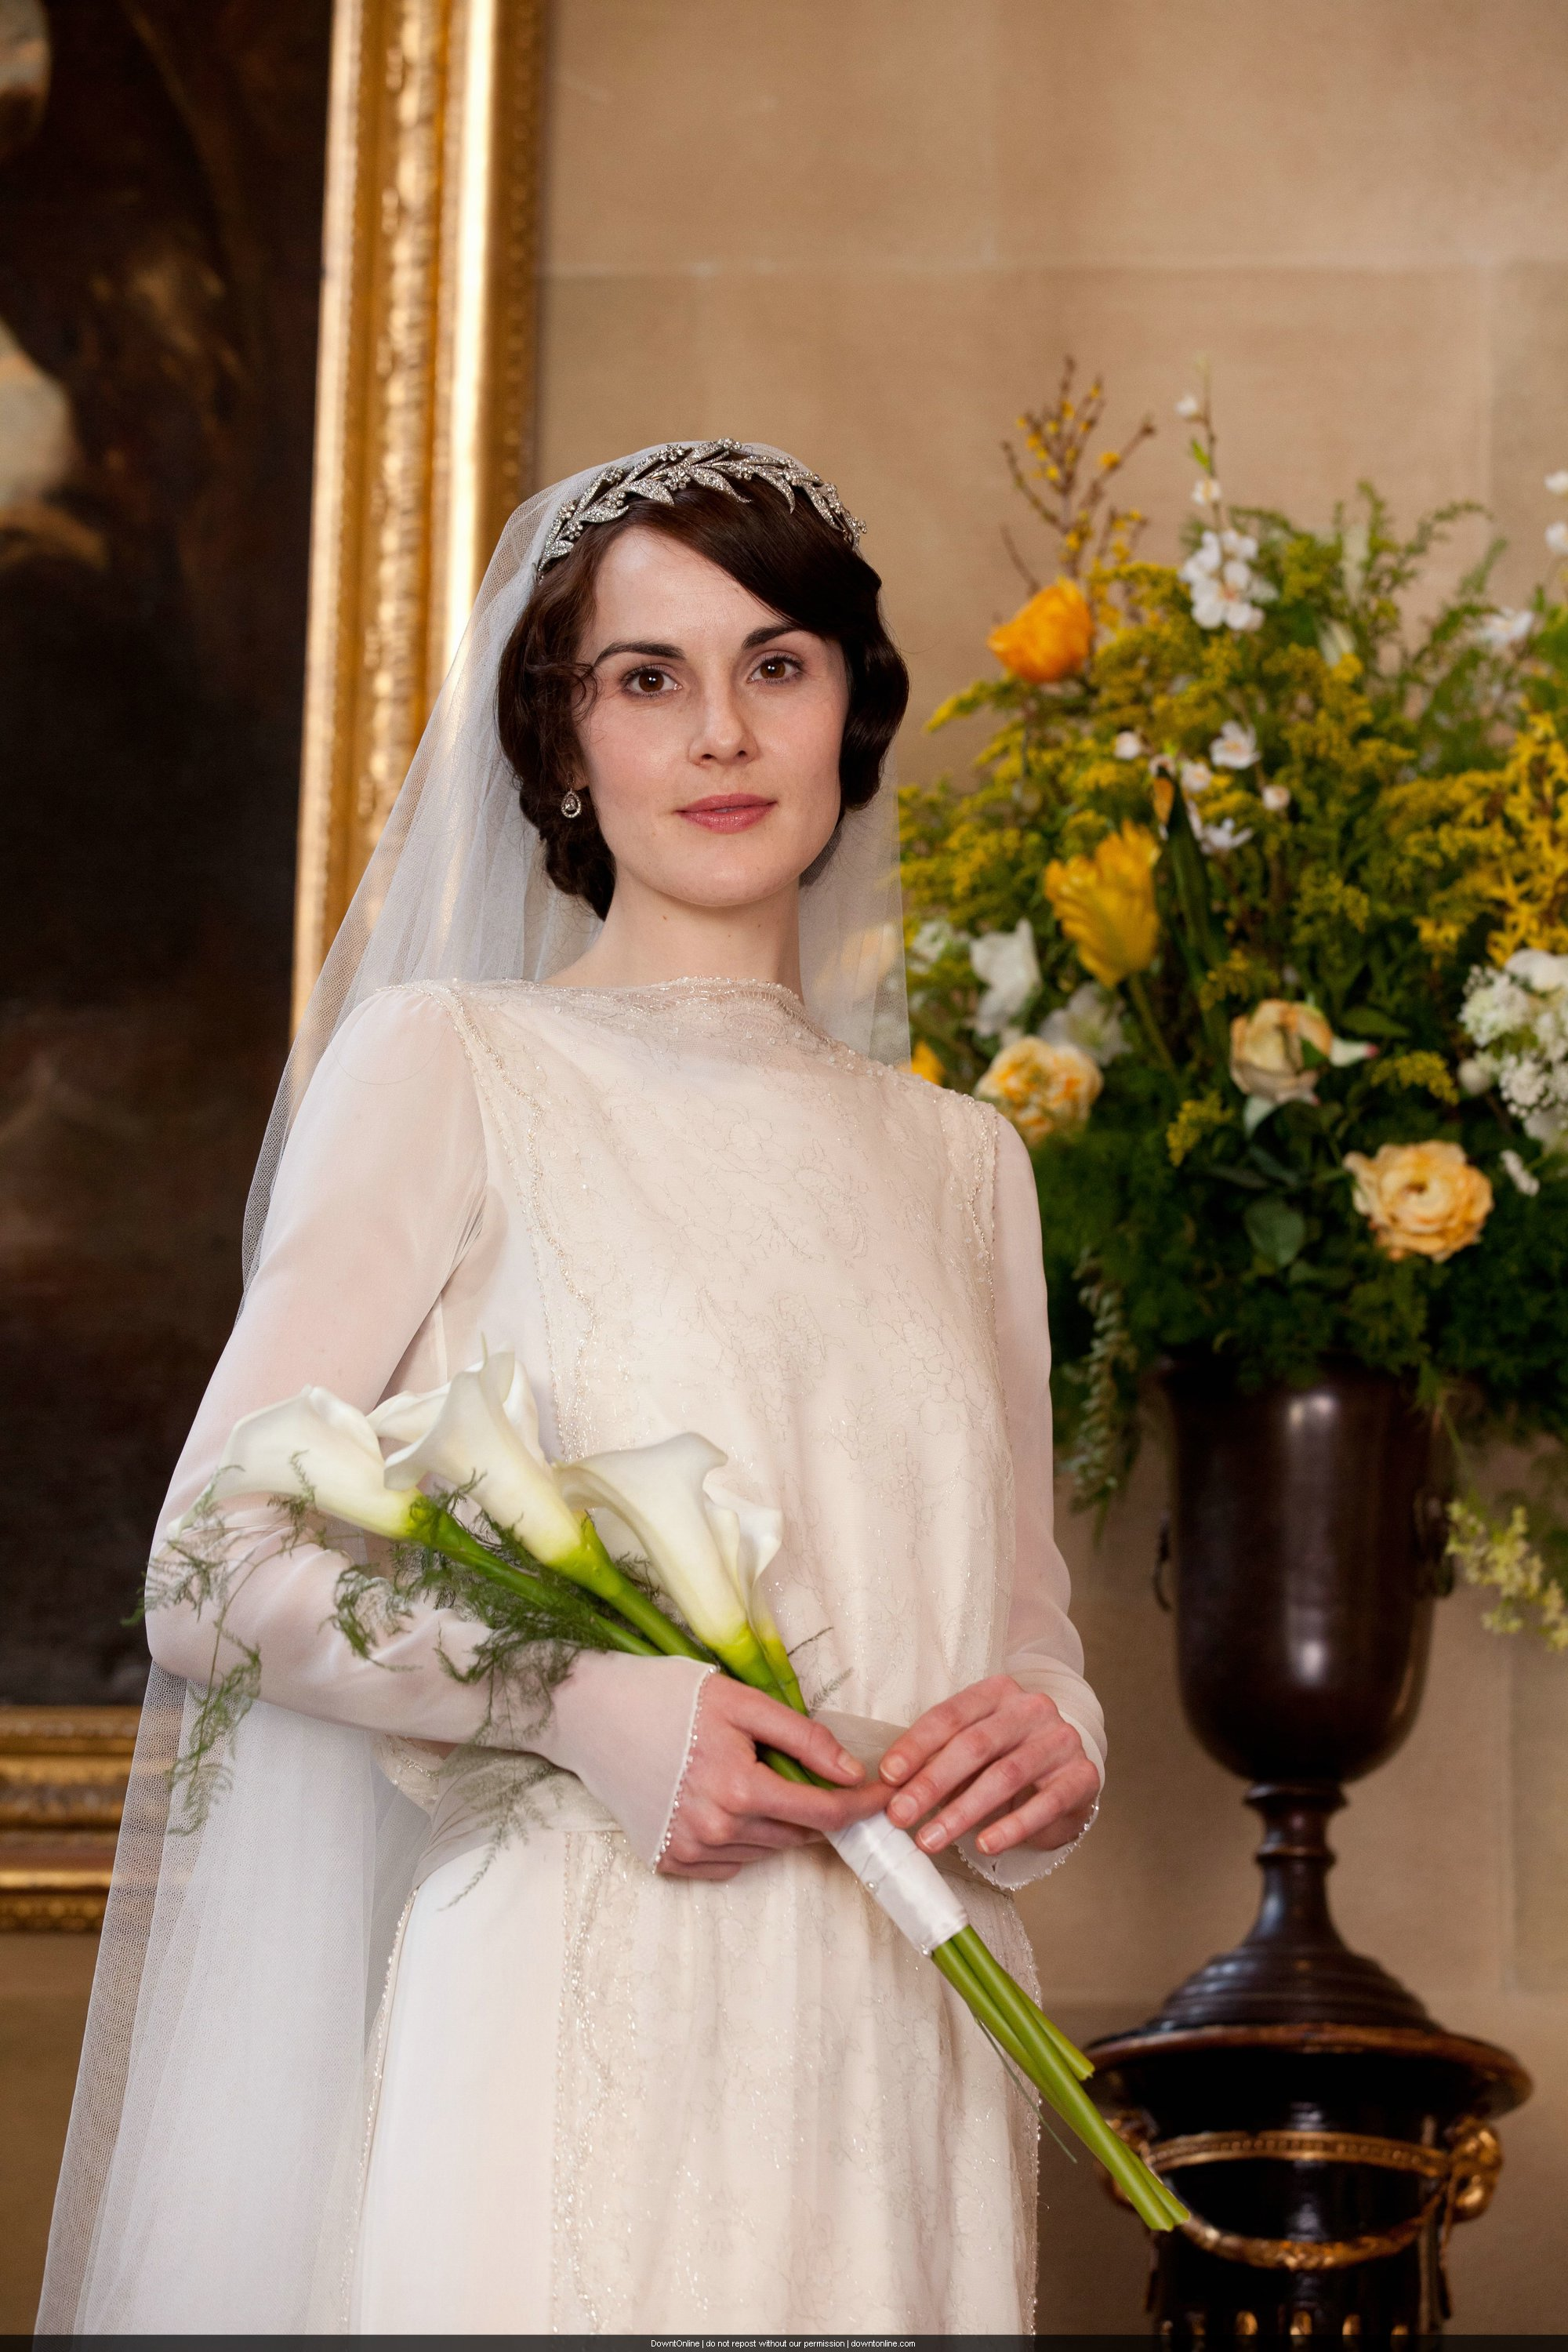 mary-and-matthew-crawley-wedding-downton-abbey-32428271-2000-3000.jpg: 9207 bytes